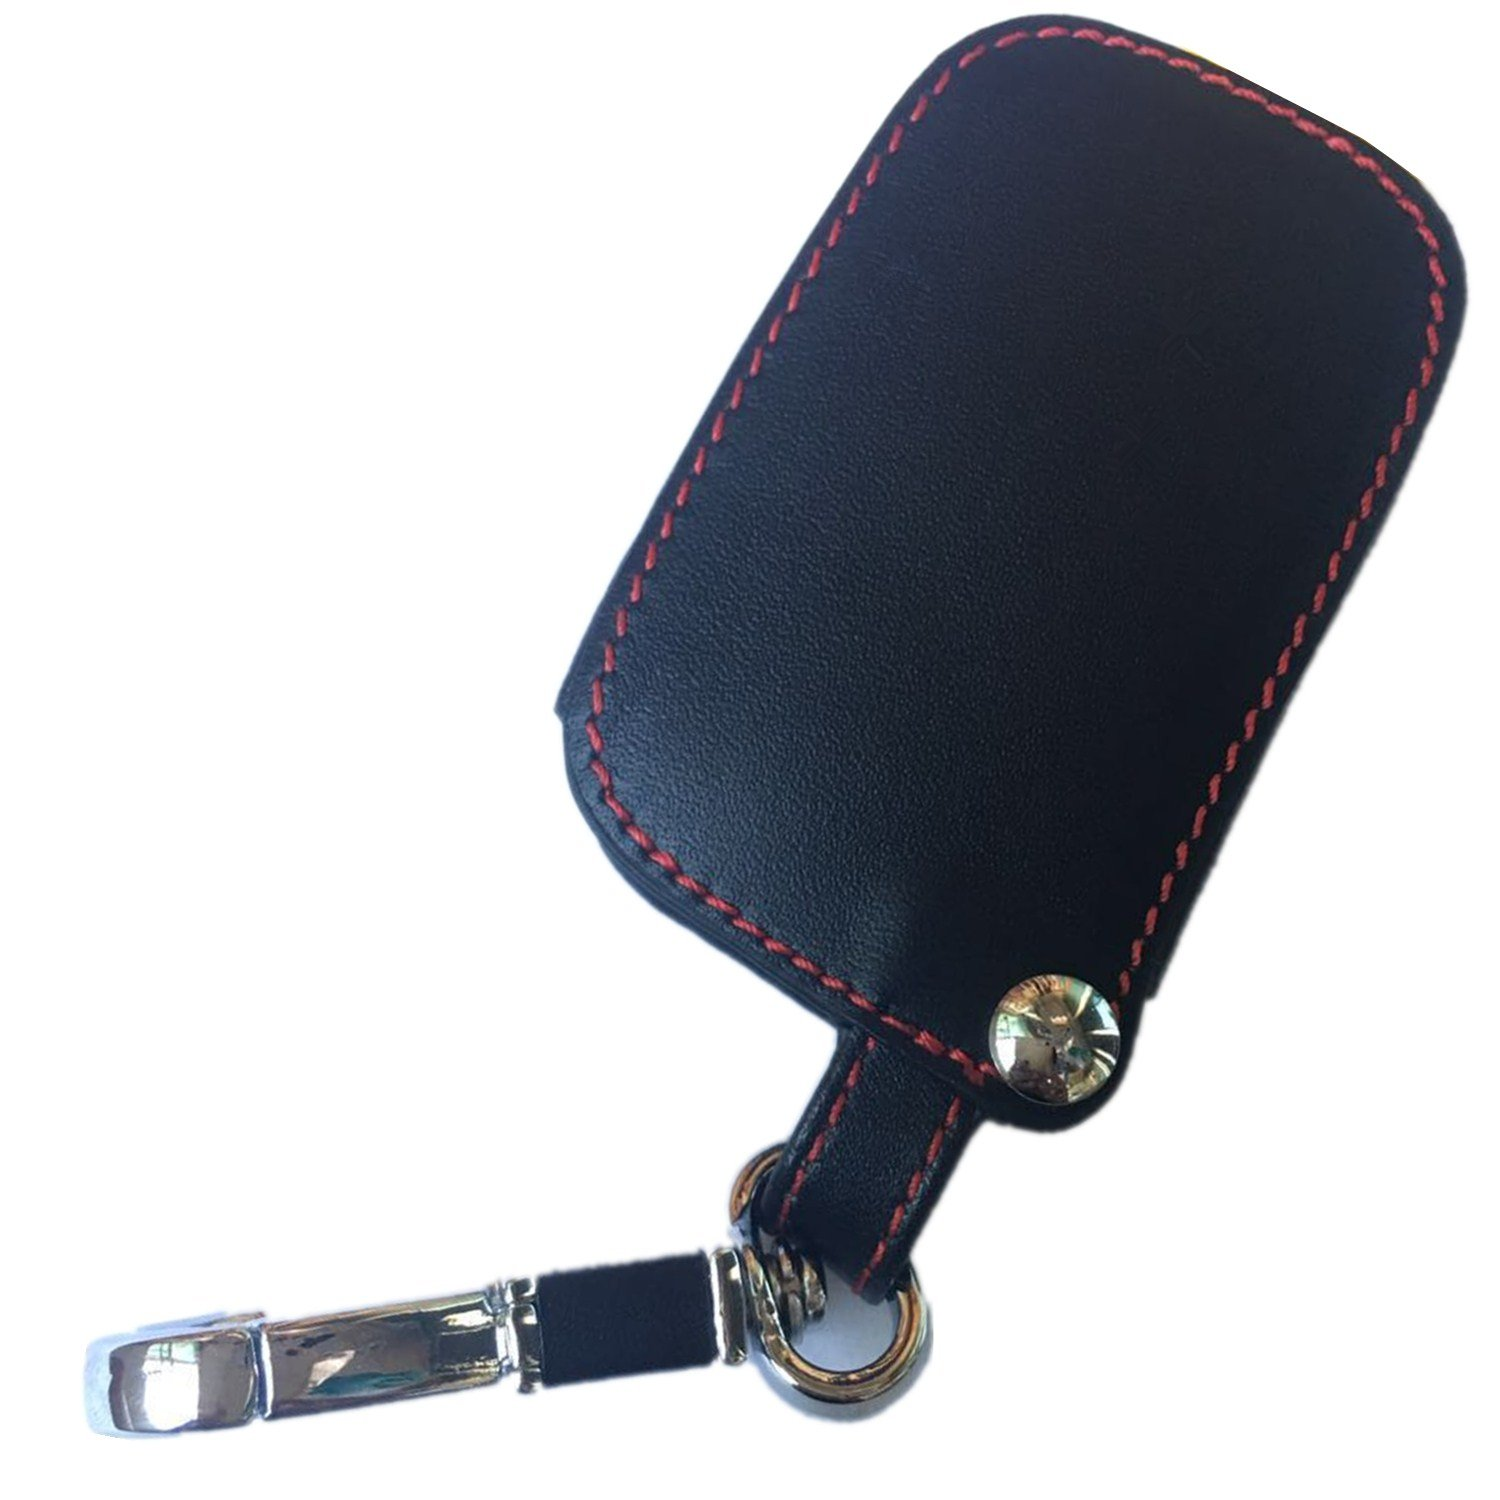 Rpkey Leather Keyless Entry Remote Control Key Fob Cover Case protector For Lexus ES350 GS300 GS350 GS430 GS450h ISC IS250 IS350 LS460 LS600h HYQ14AAB 89904-50380 89904-30270